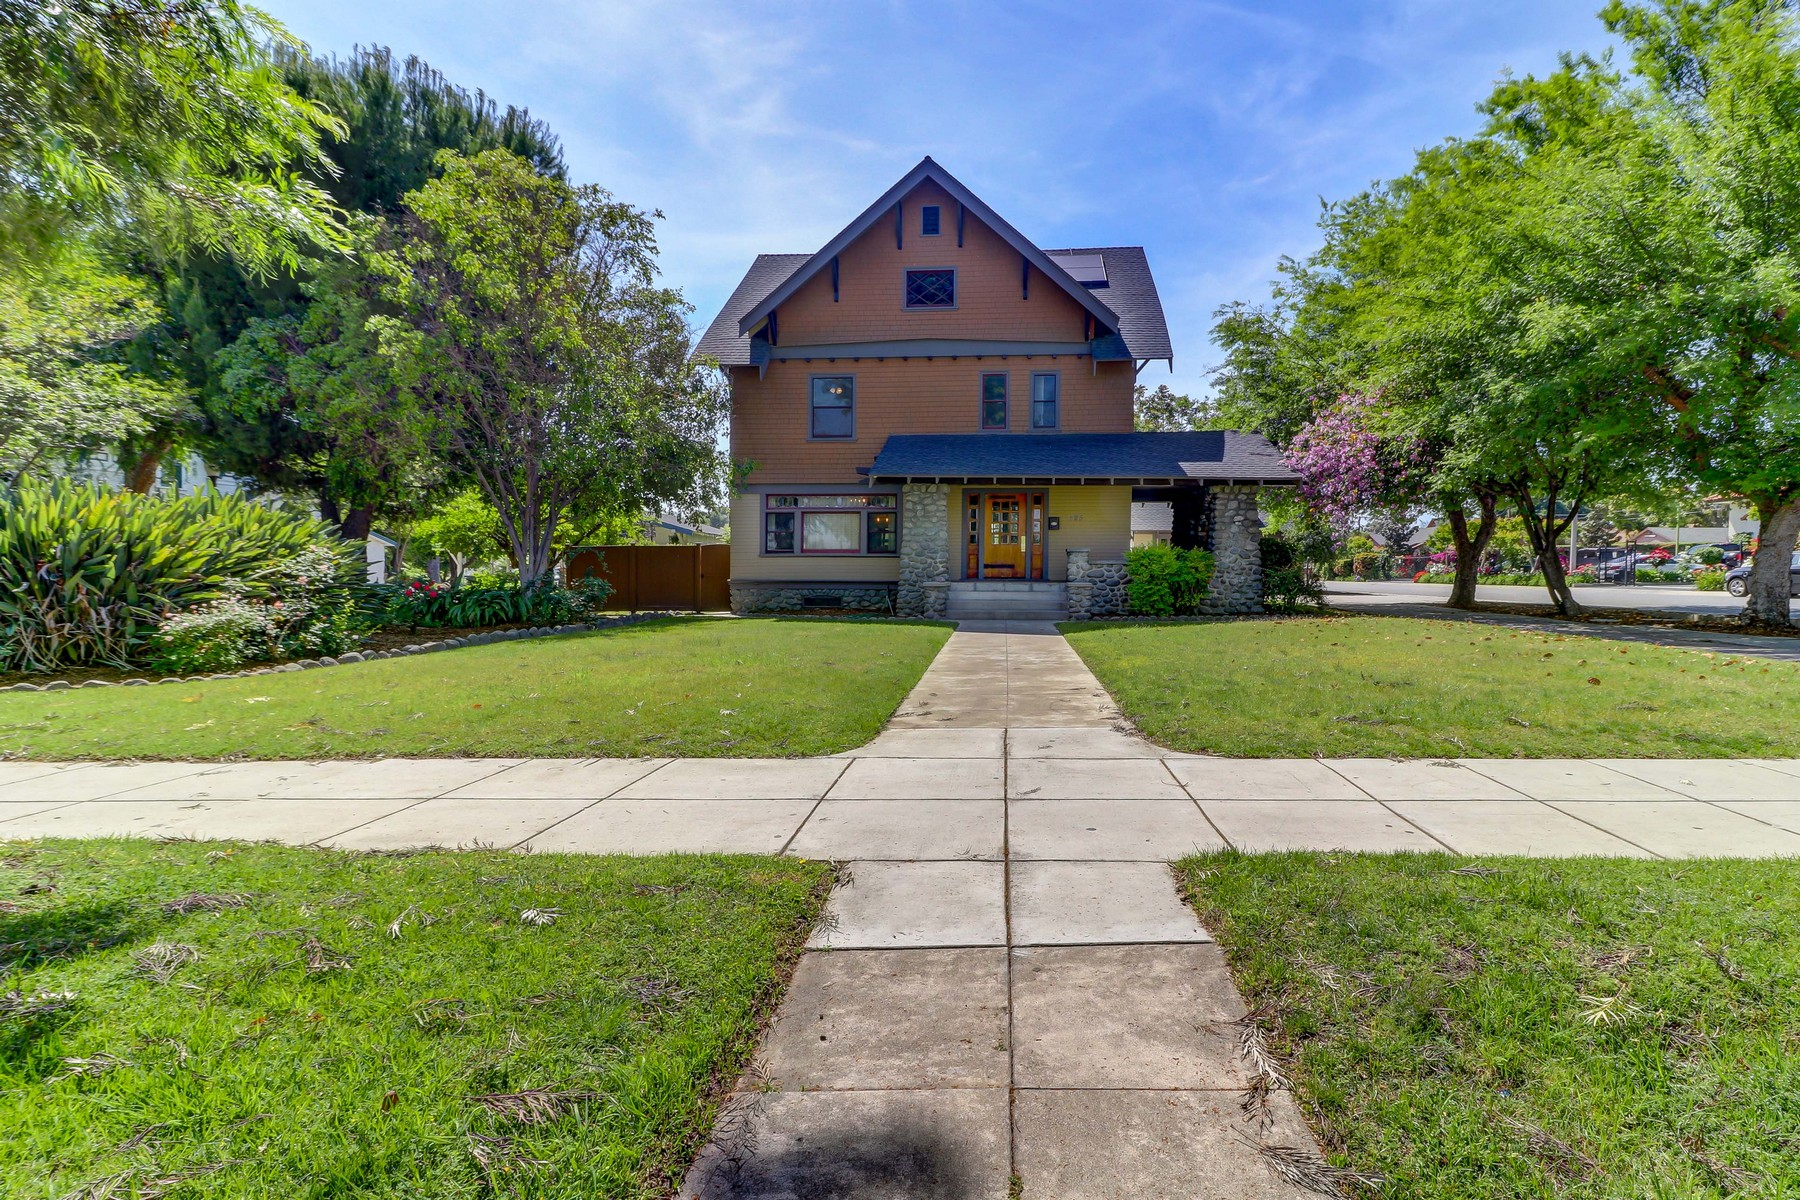 Single Family Home for sale in 825 N. Euclid Avenue, Ontario, California ,91762